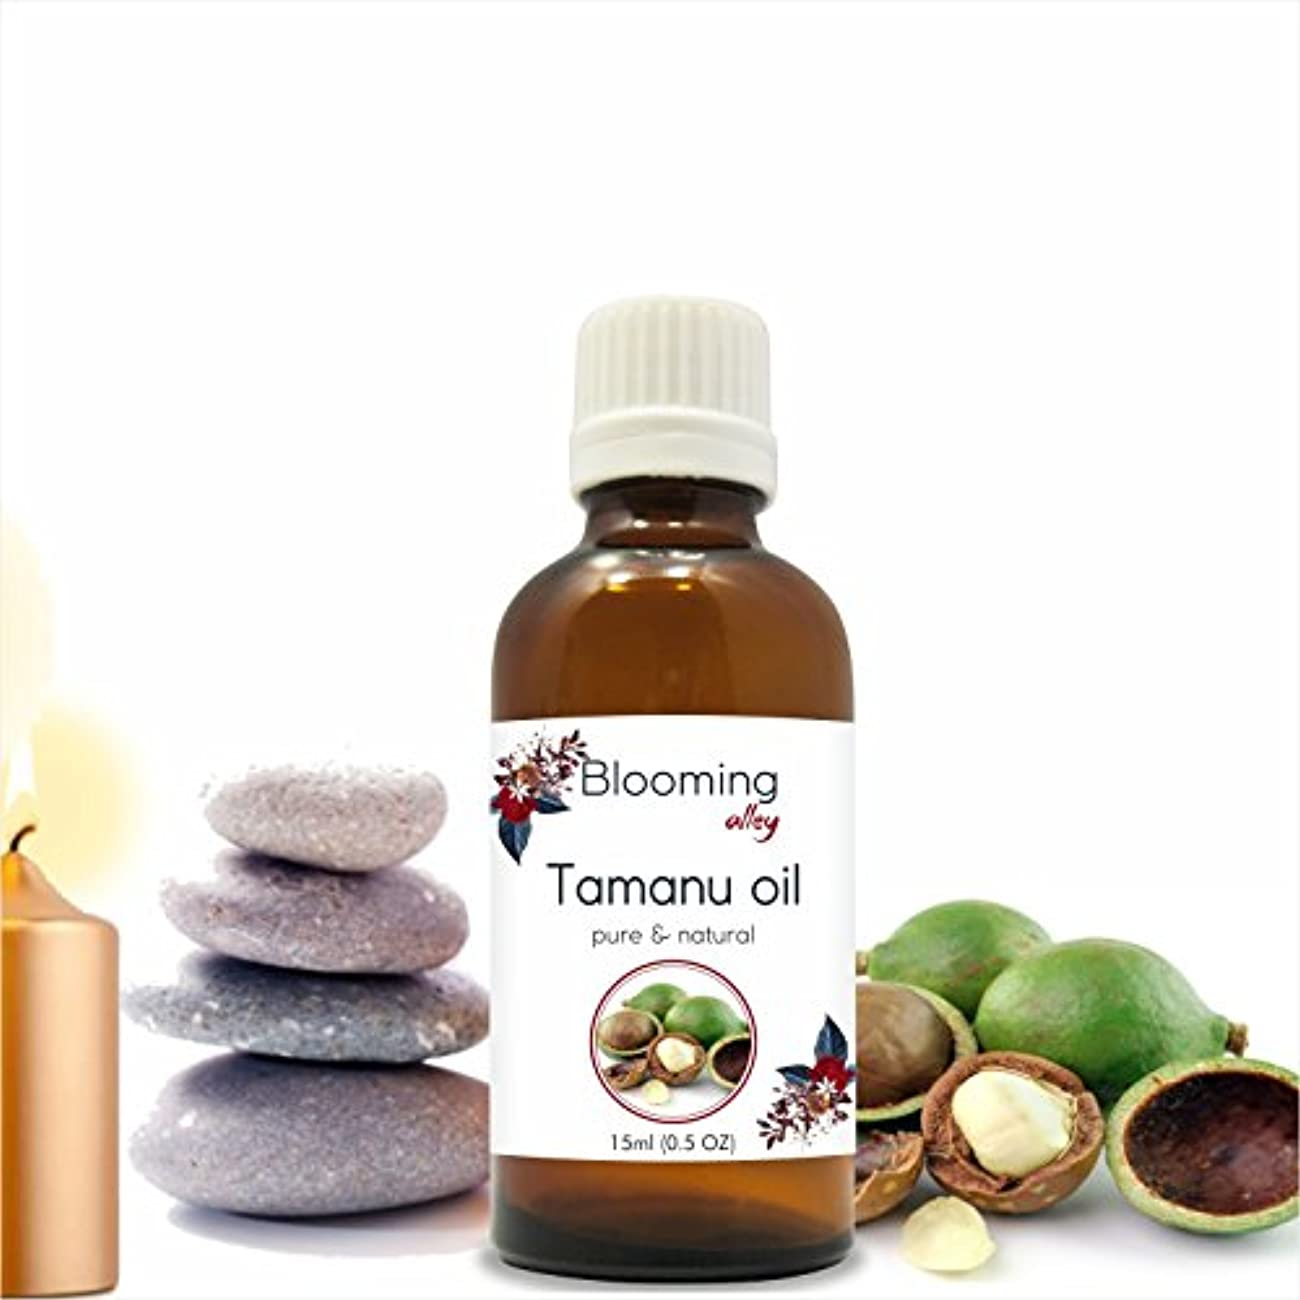 Tamanu Oil(Calophyllum Inophyllum) 15 ml or .50 Fl Oz by Blooming Alley